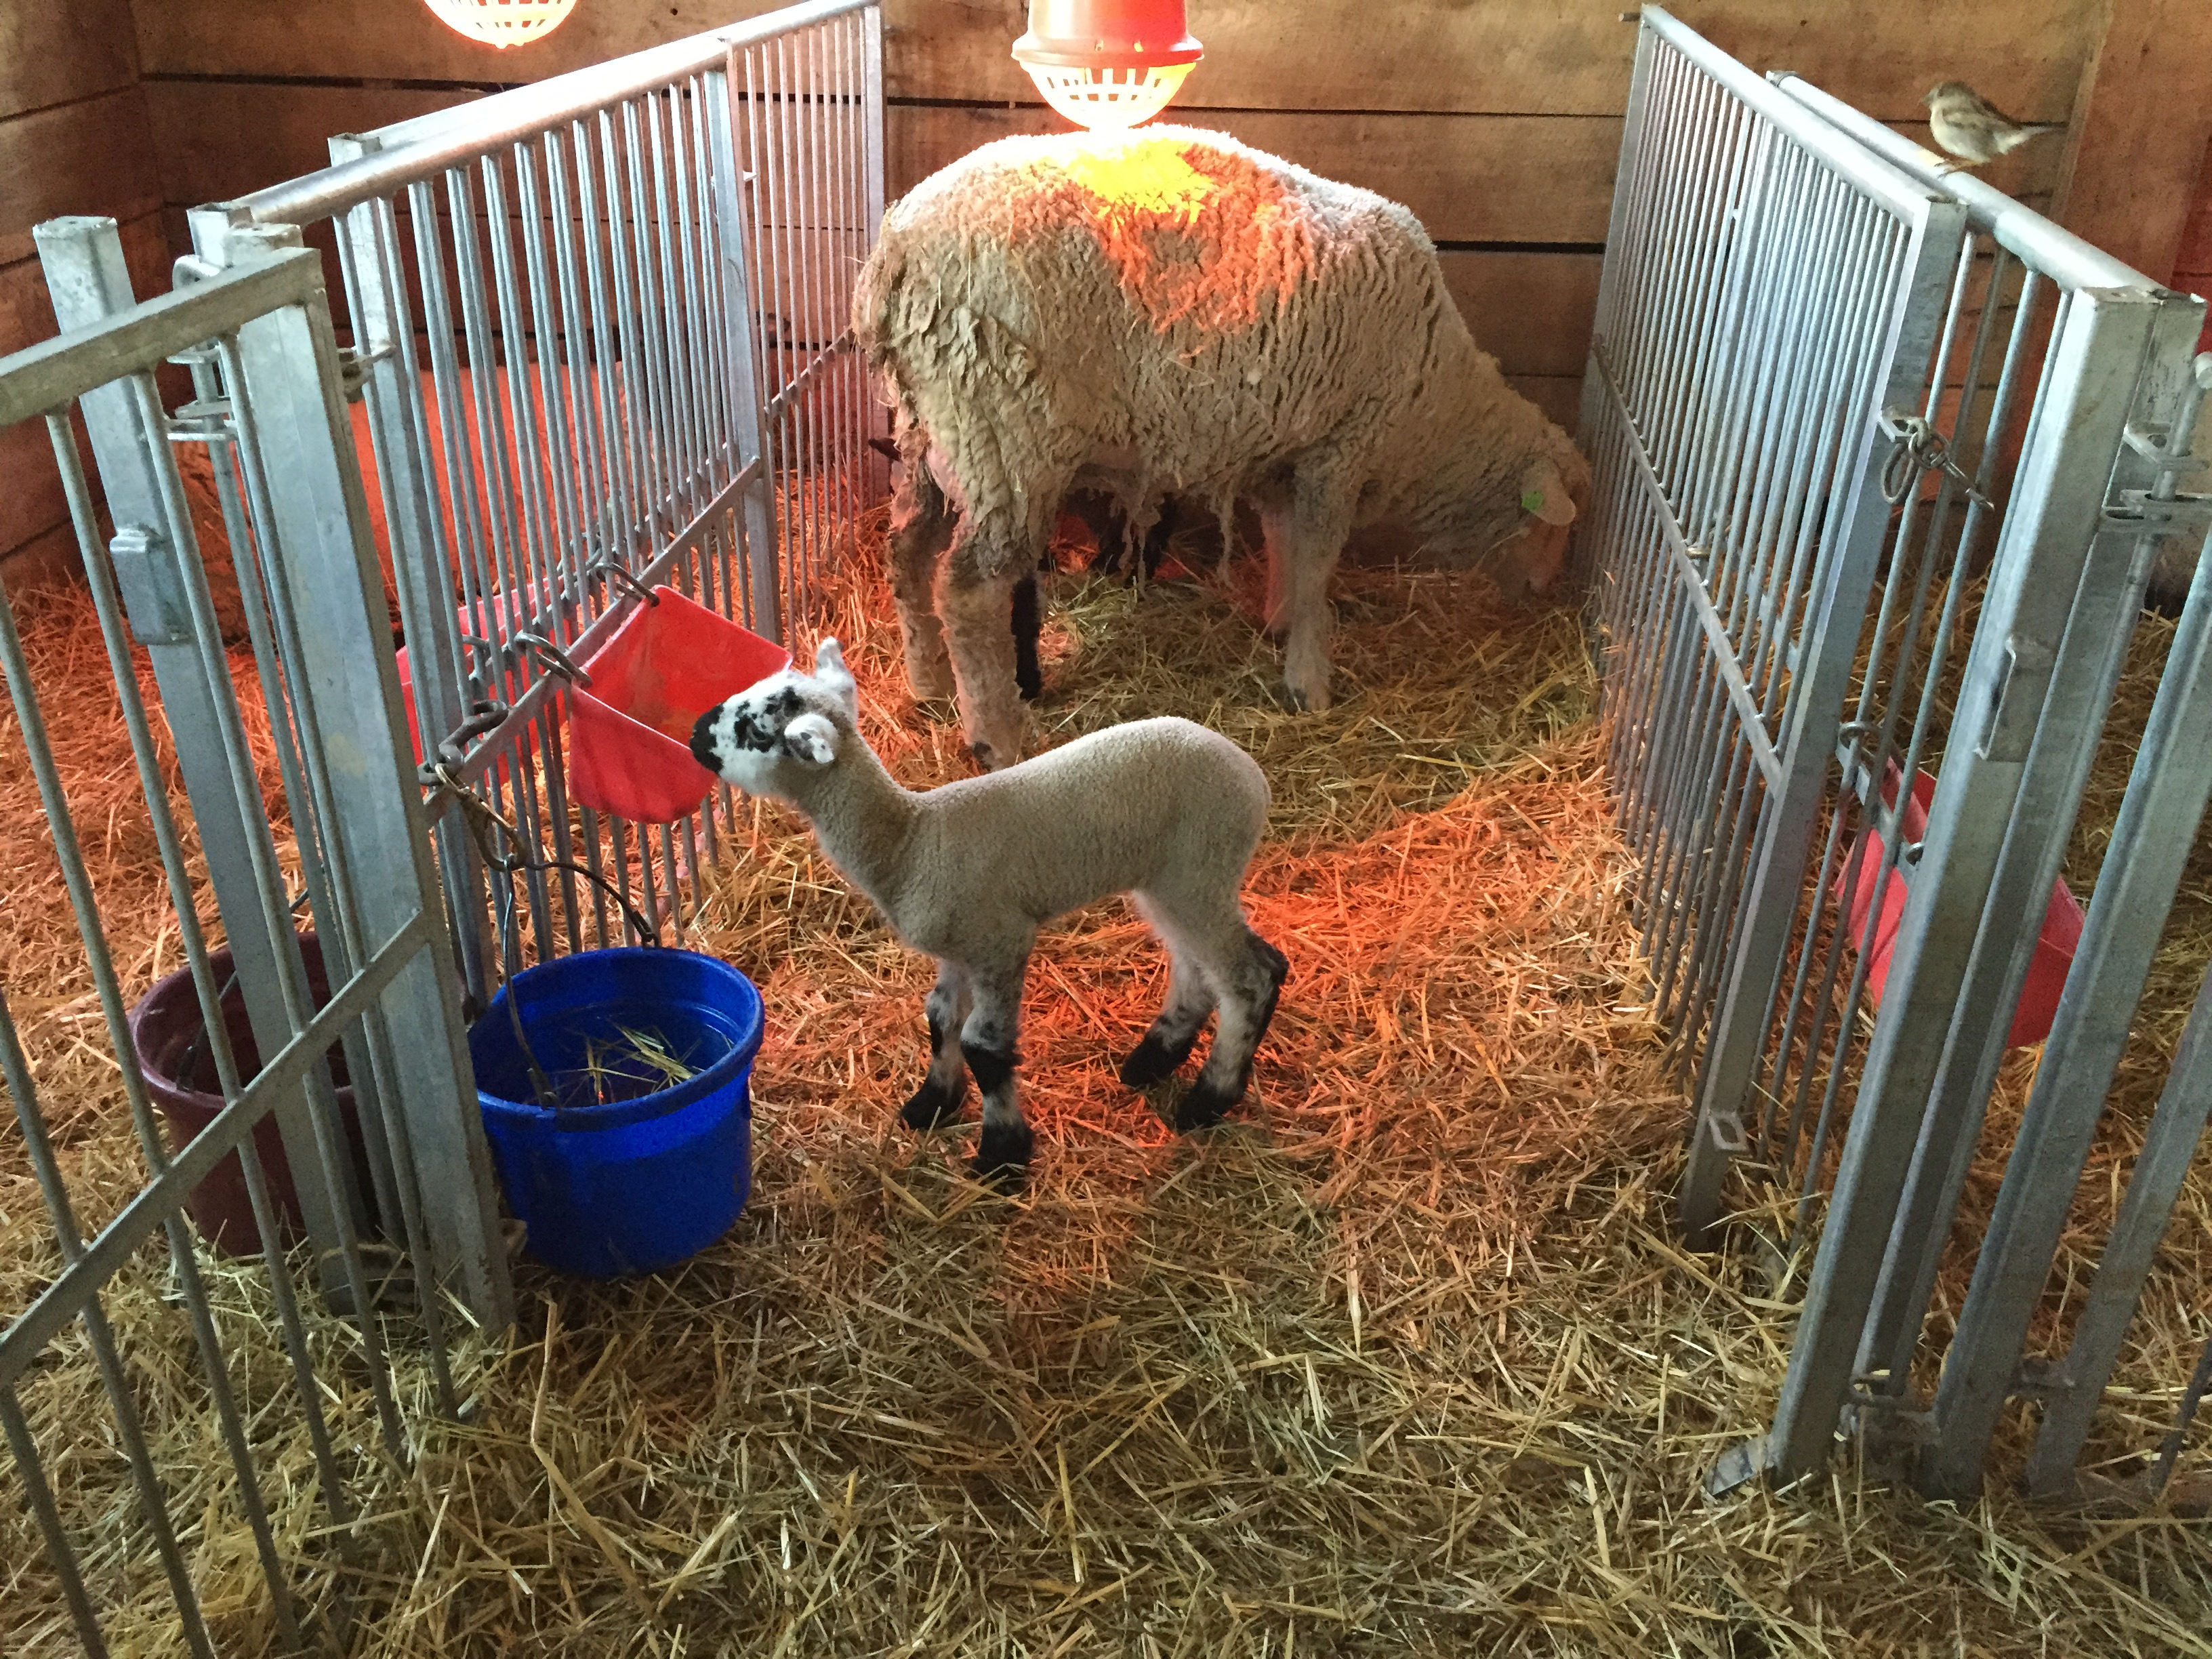 Sheep Mama With Baby Lambs In Stall Inside Barn